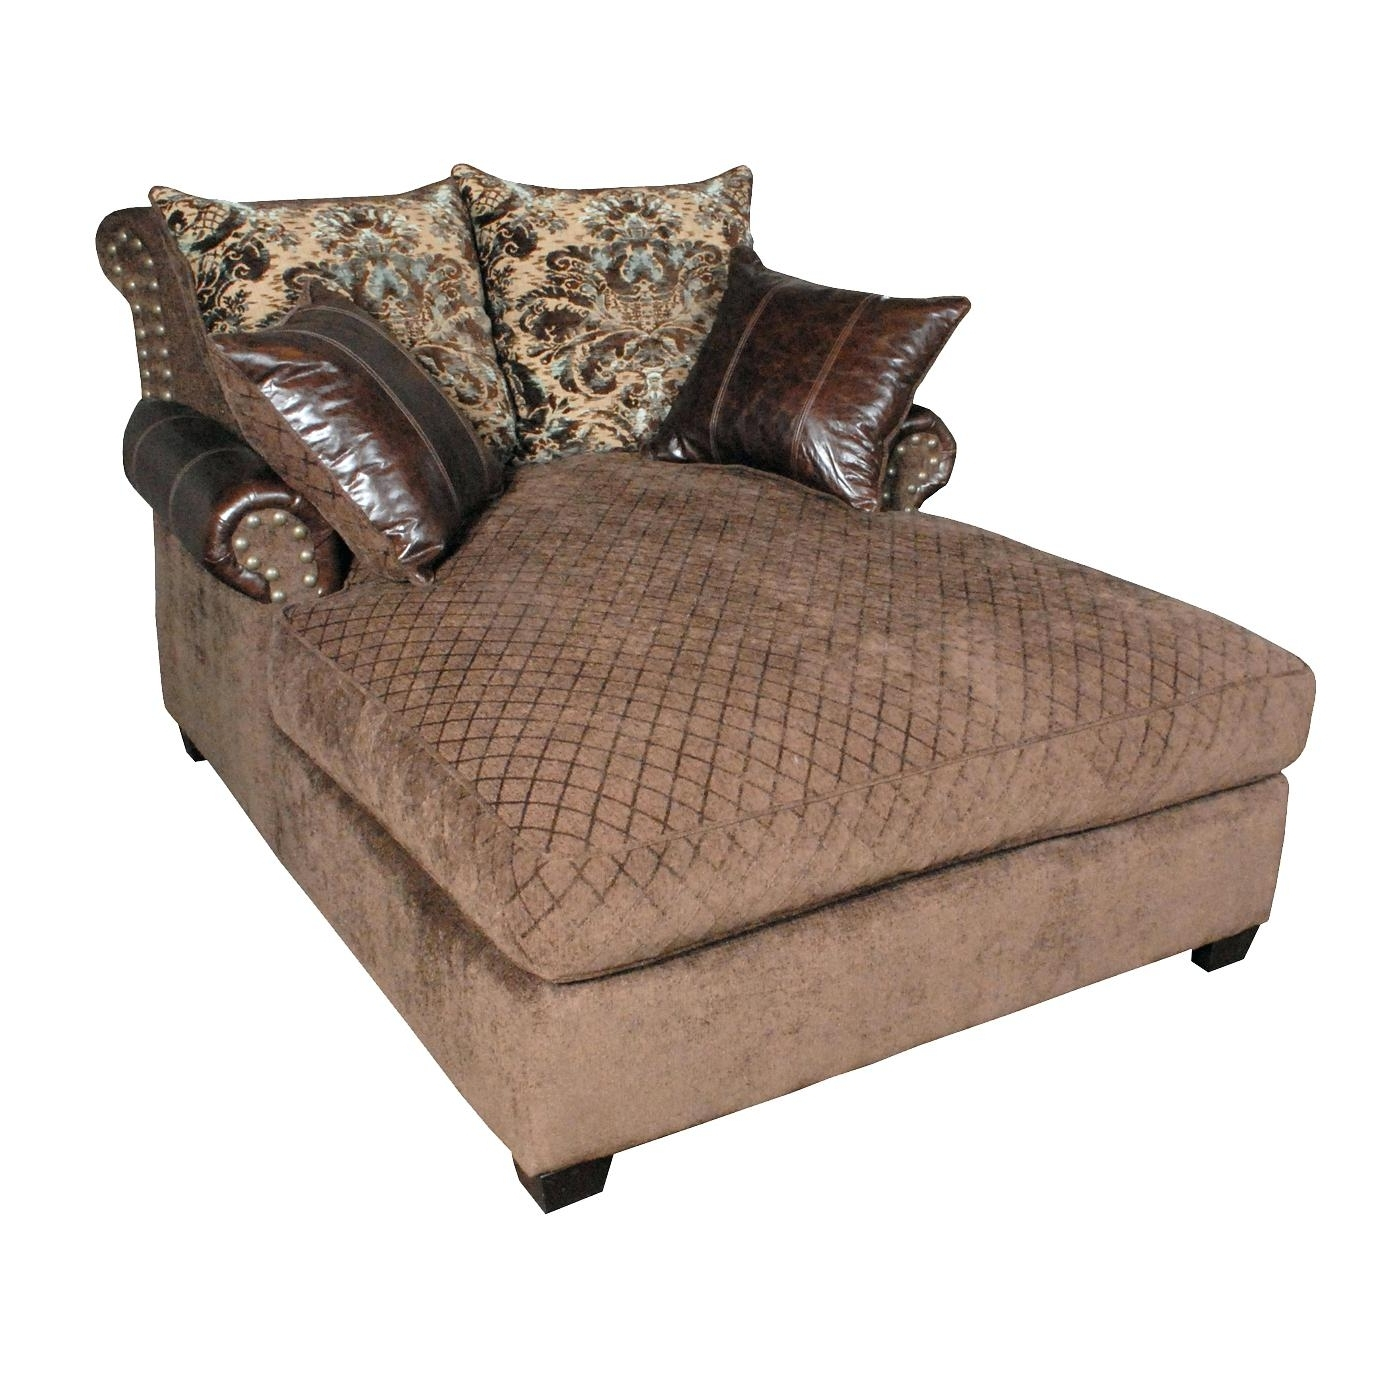 Fashionable Double Chaise Lounge Chair Cover • Chair Covers Ideas With Regard To Oversized Chaise Lounge Chairs (View 14 of 15)